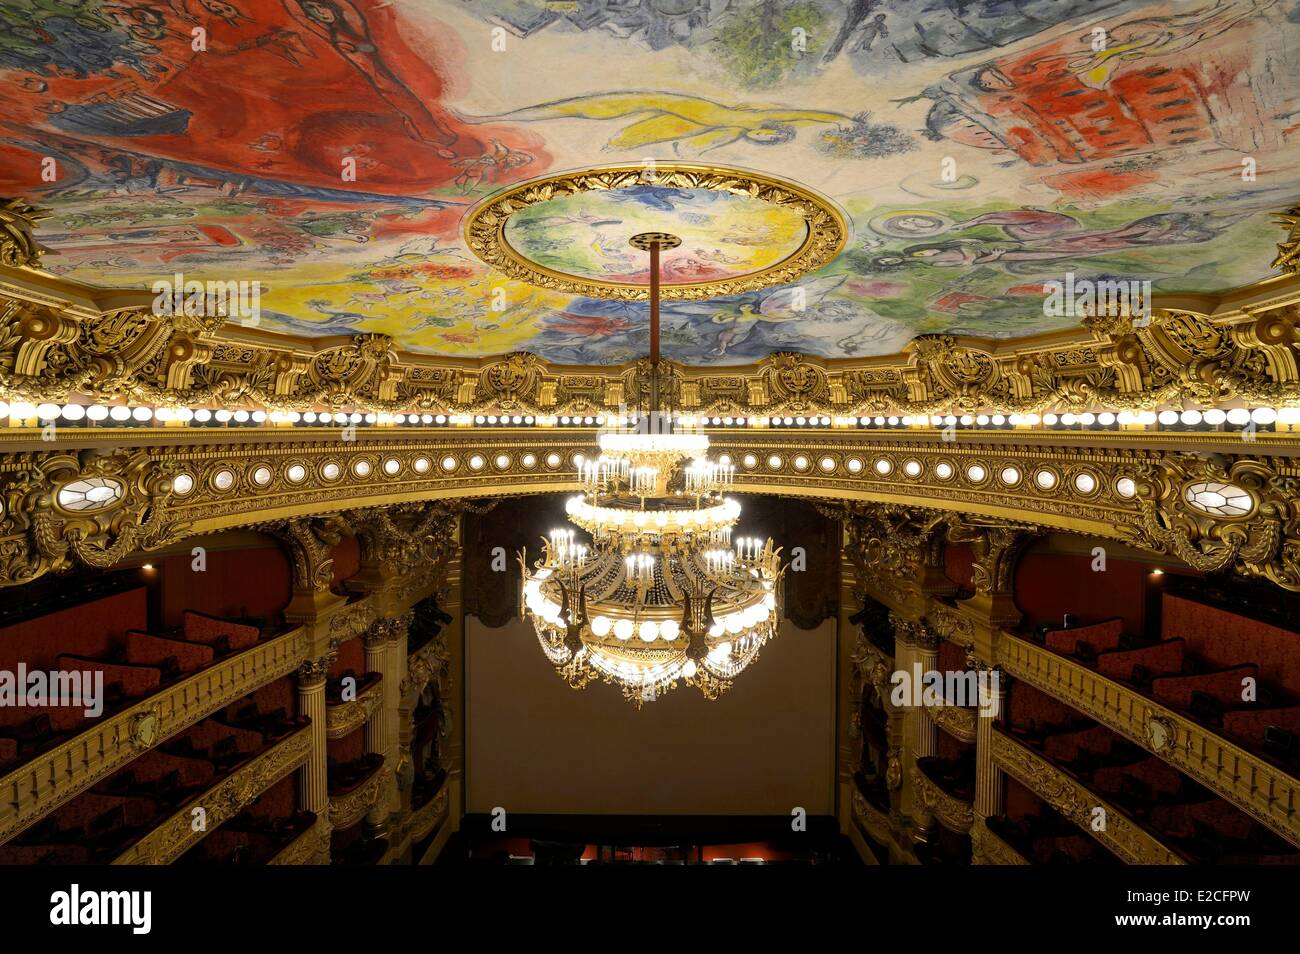 France paris garnier opera the ceiling cupola decorated by marc france paris garnier opera the ceiling cupola decorated by marc chagall in the auditorium and the 7 to 8 ton bronze and crystal chandelier designed by aloadofball Images